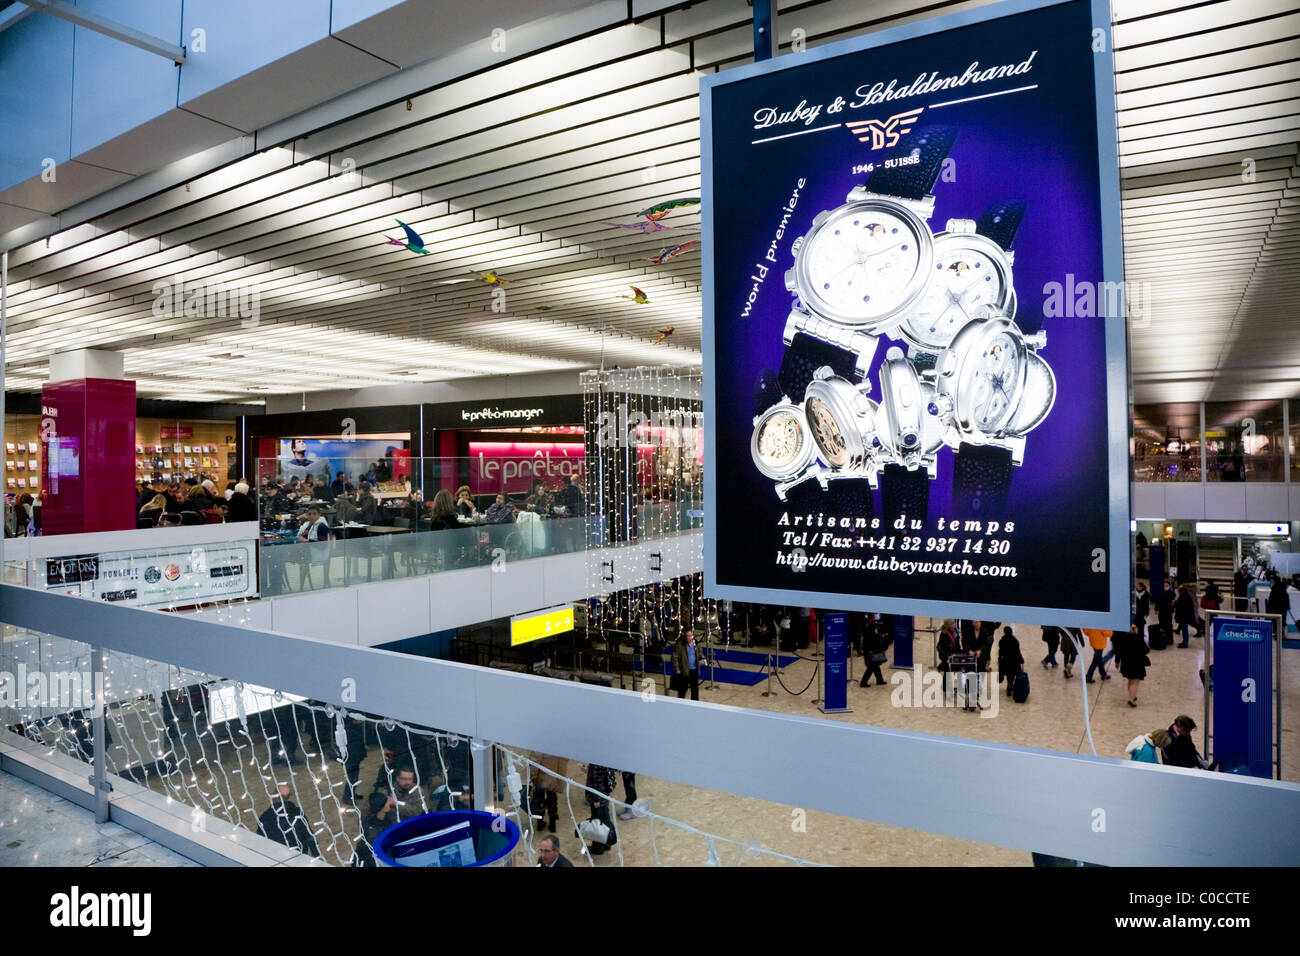 Main International terminal departure hall, Geneva / Geneve Airport, Switzerland. The airport is commonly known - Stock Image